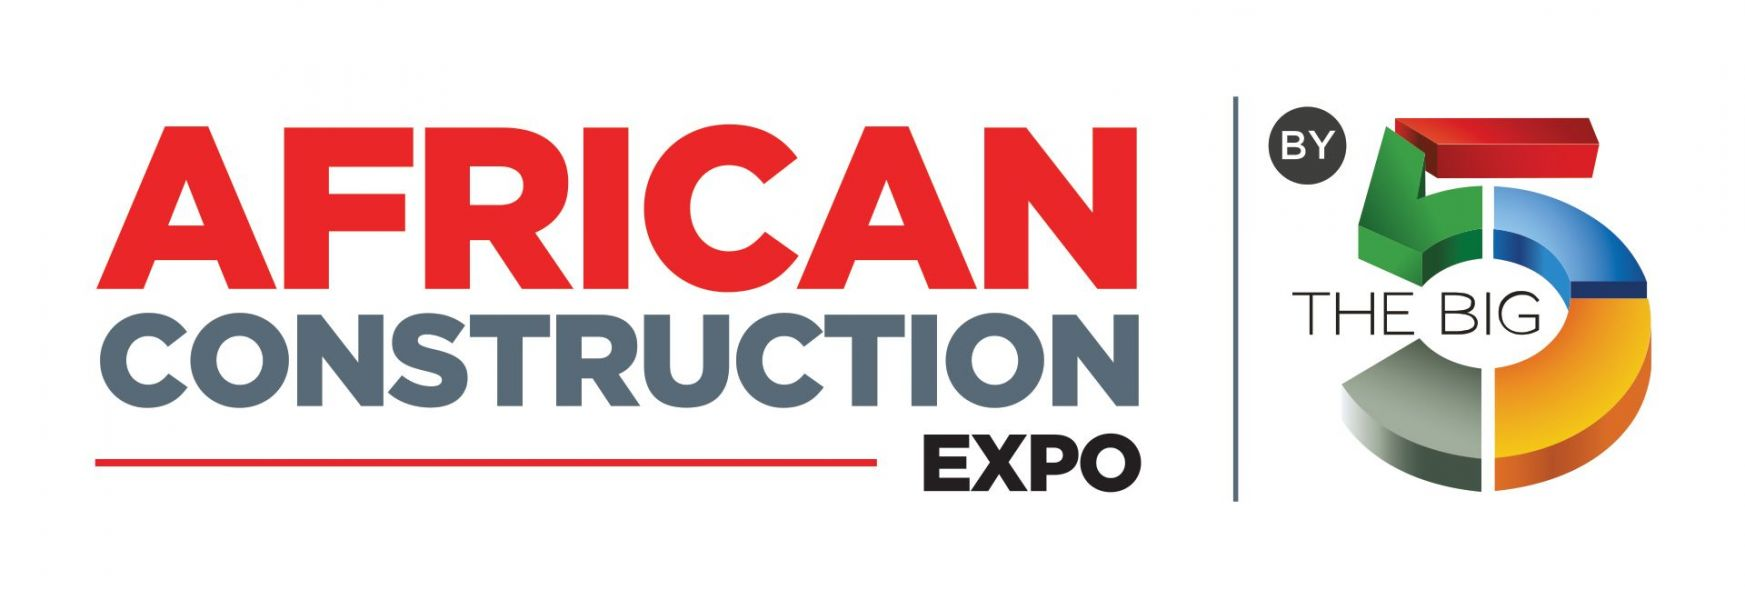 Logotipo de African Construction Expo